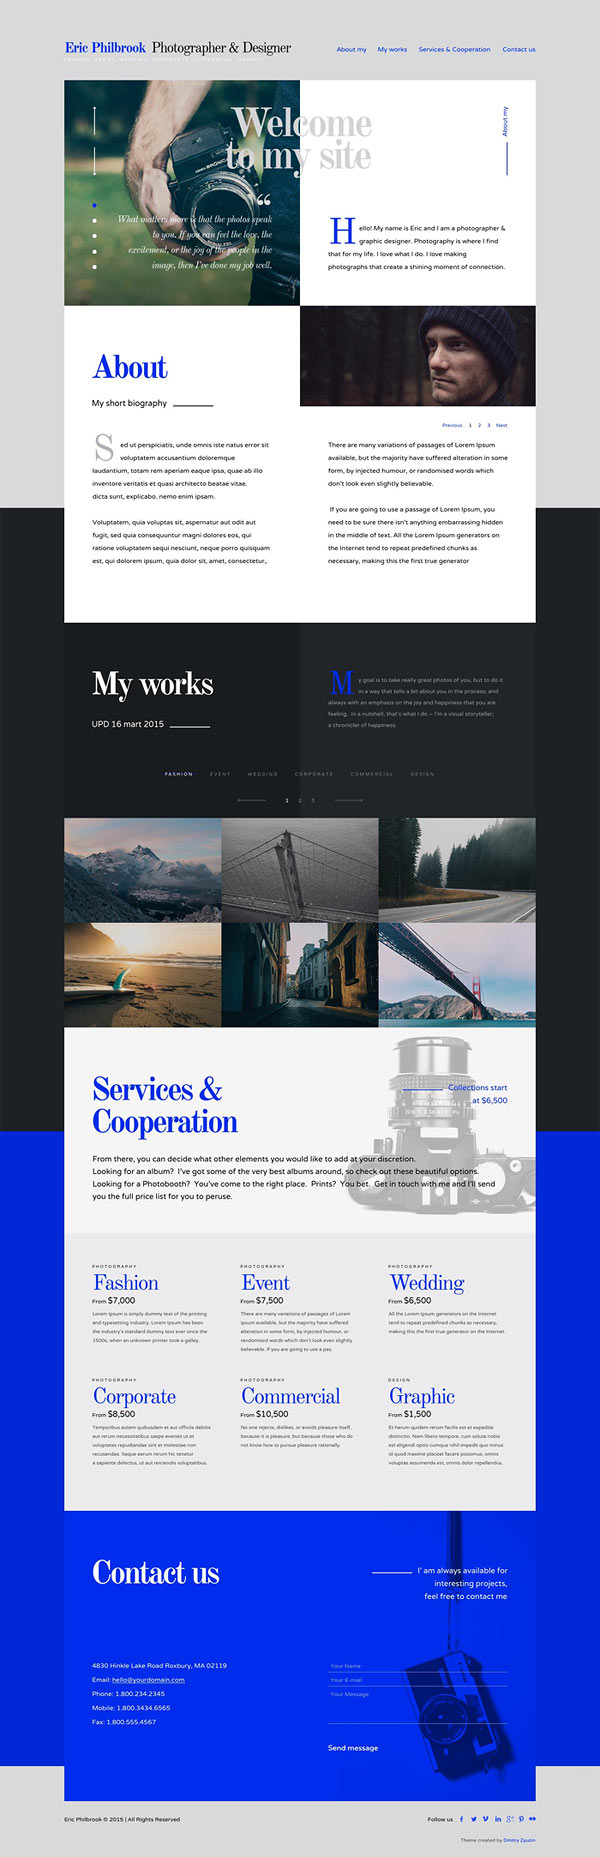 Foliograph for Photographers & Designers Adobe Muse Theme